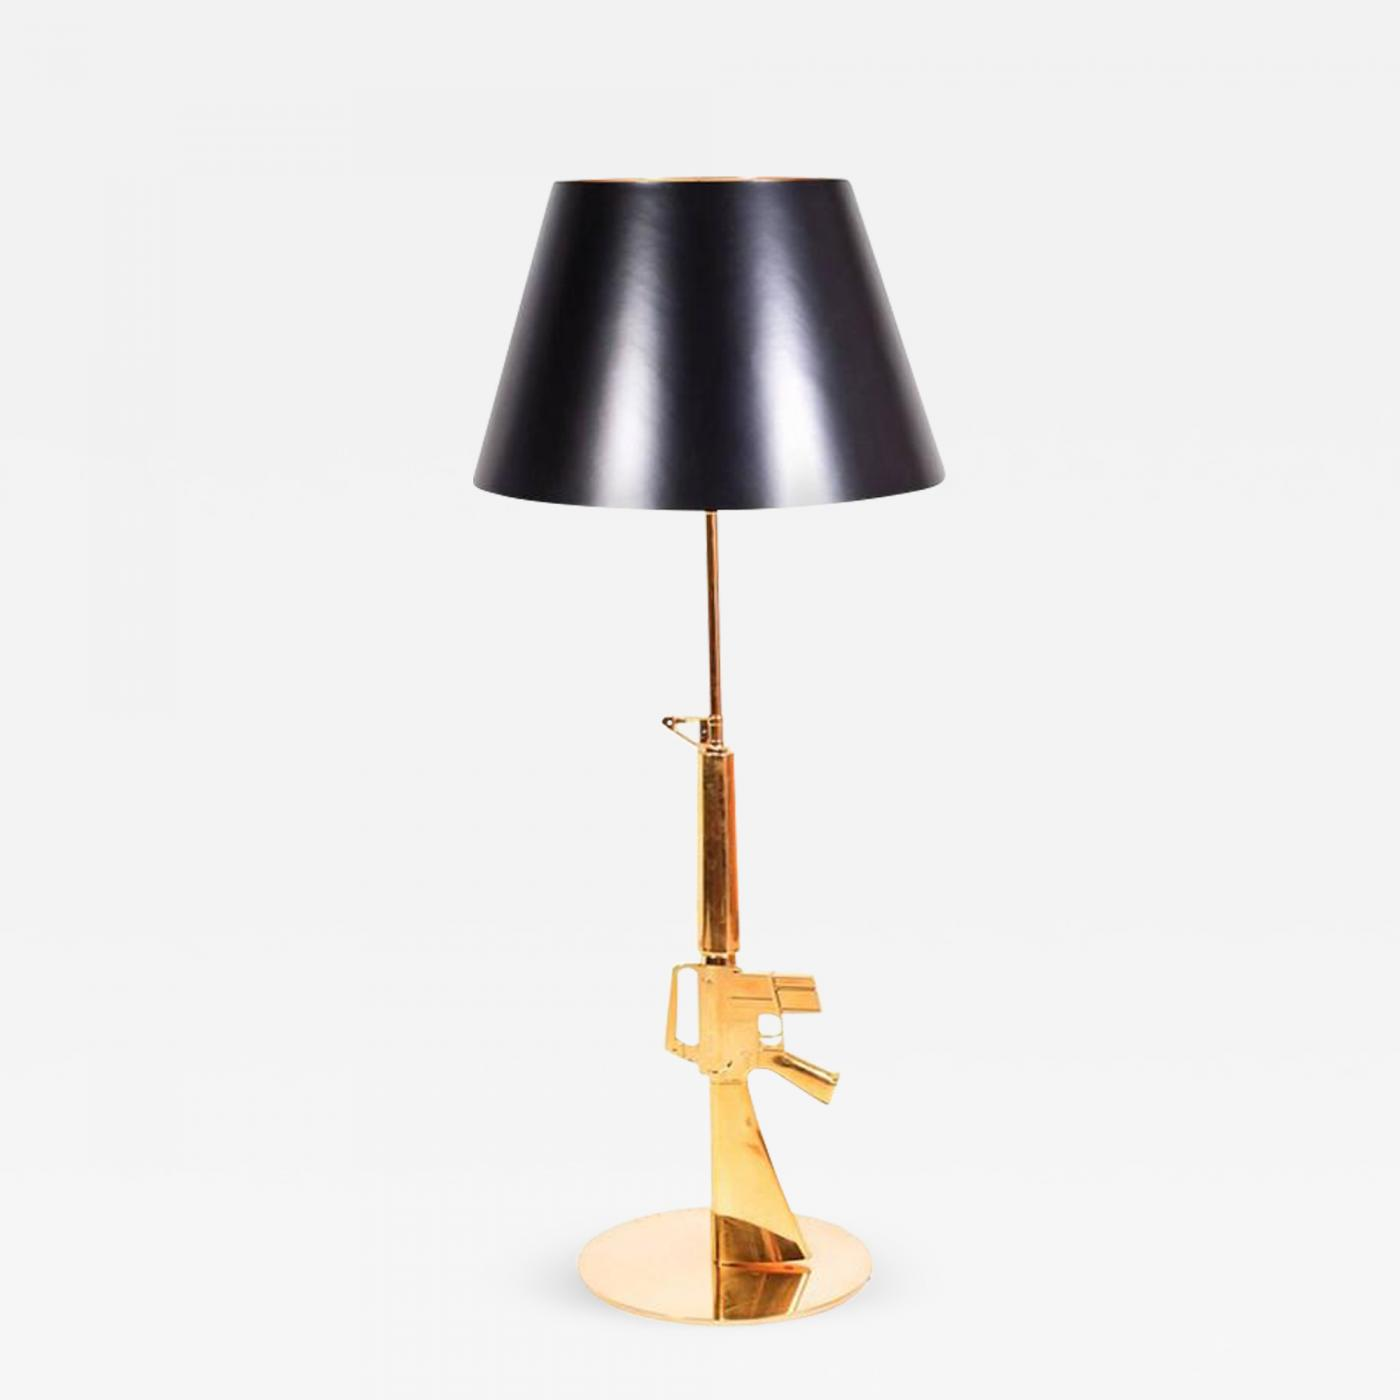 Philipp Stark Philippe Starck Philippe Starck Gun Floor Lamp For Flos